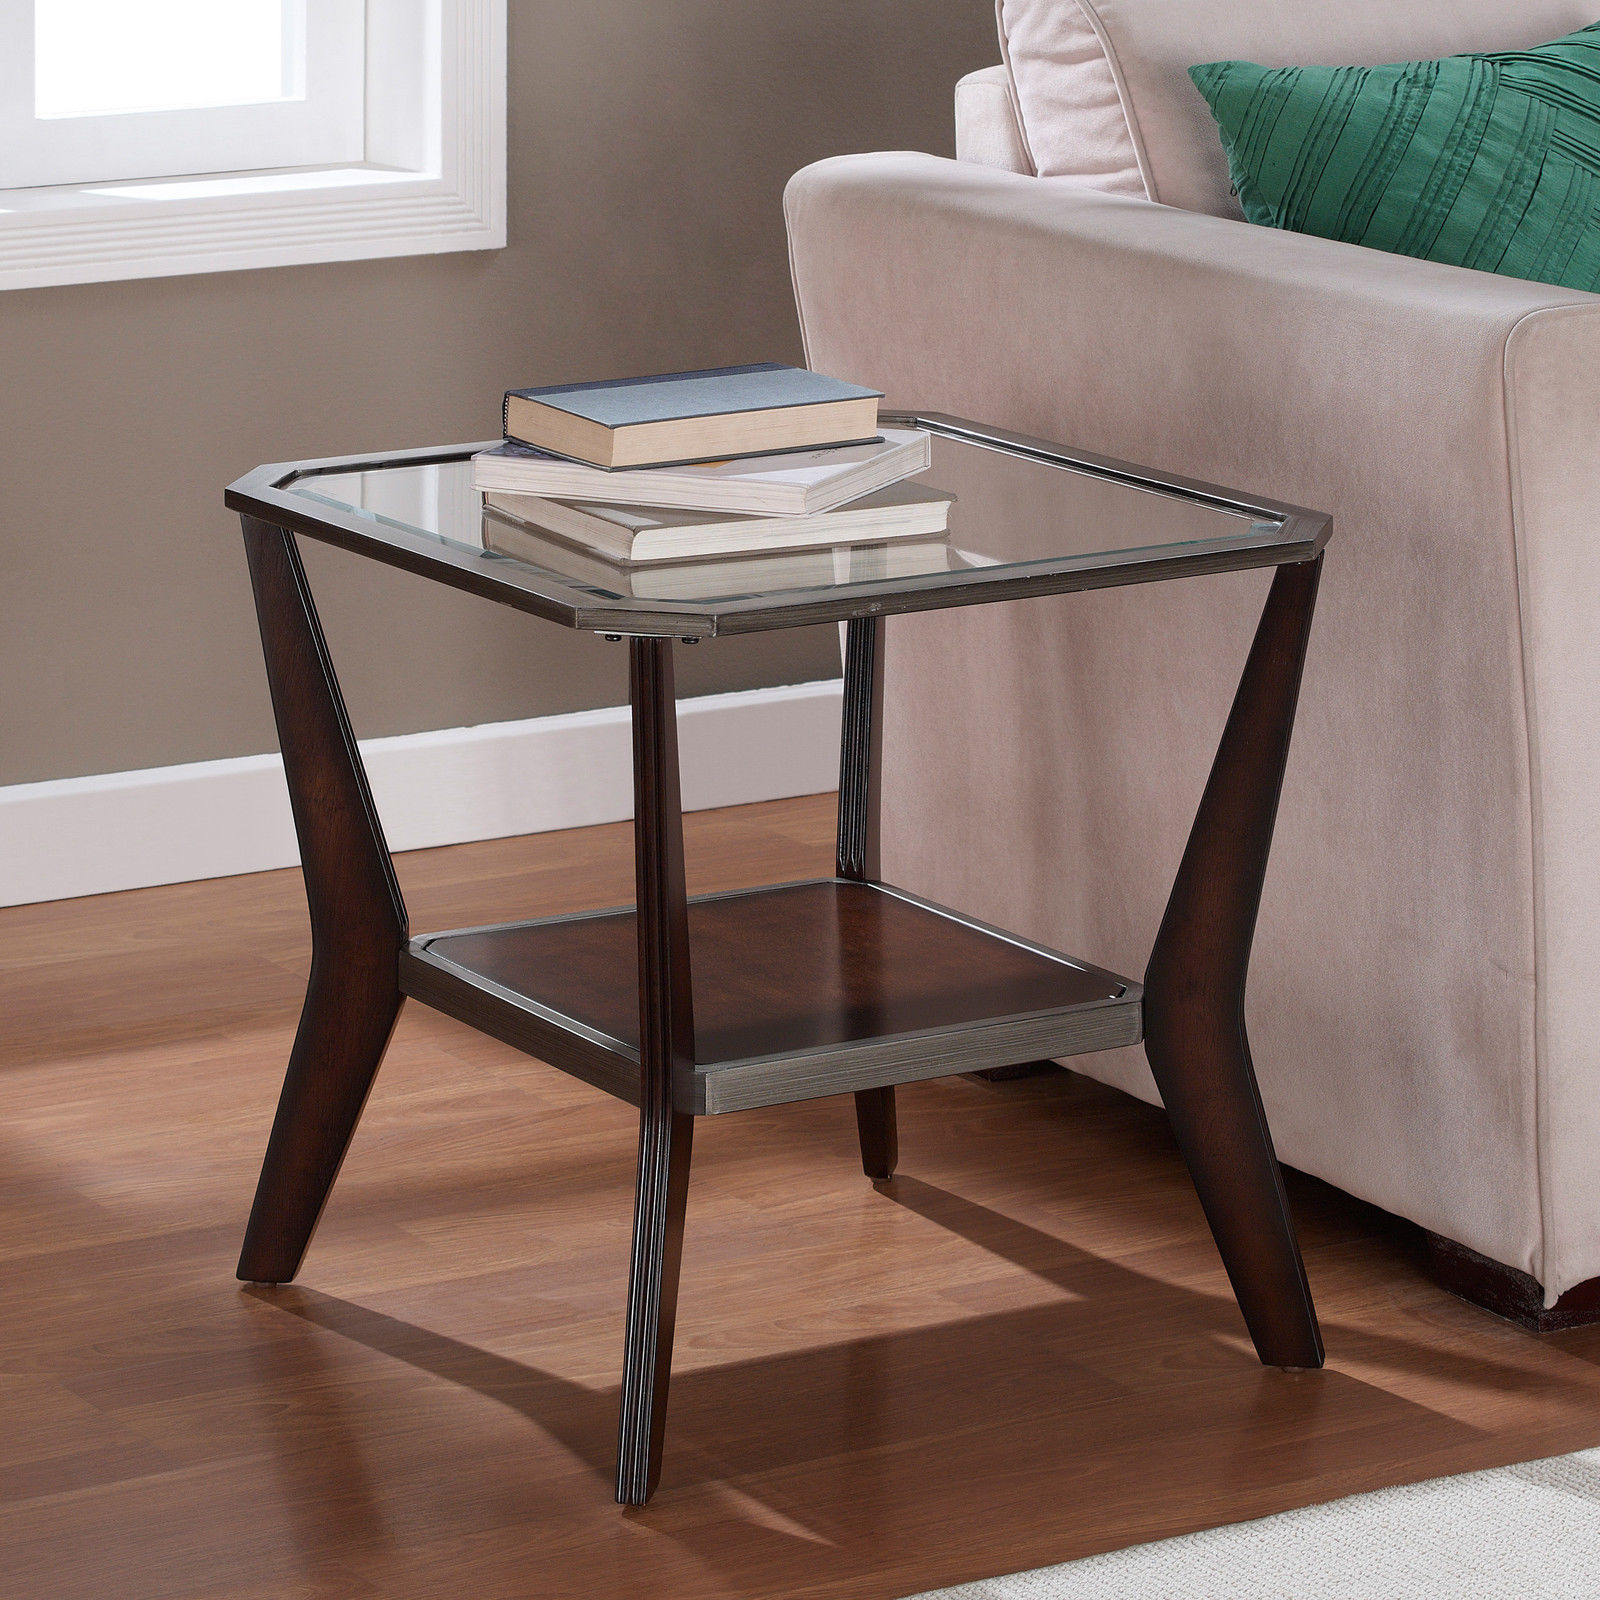 great ideas side tables for living room design small white accent drawing high corner table whitewash bedside wicker patio set console with shelves and drawers perspex cube owings